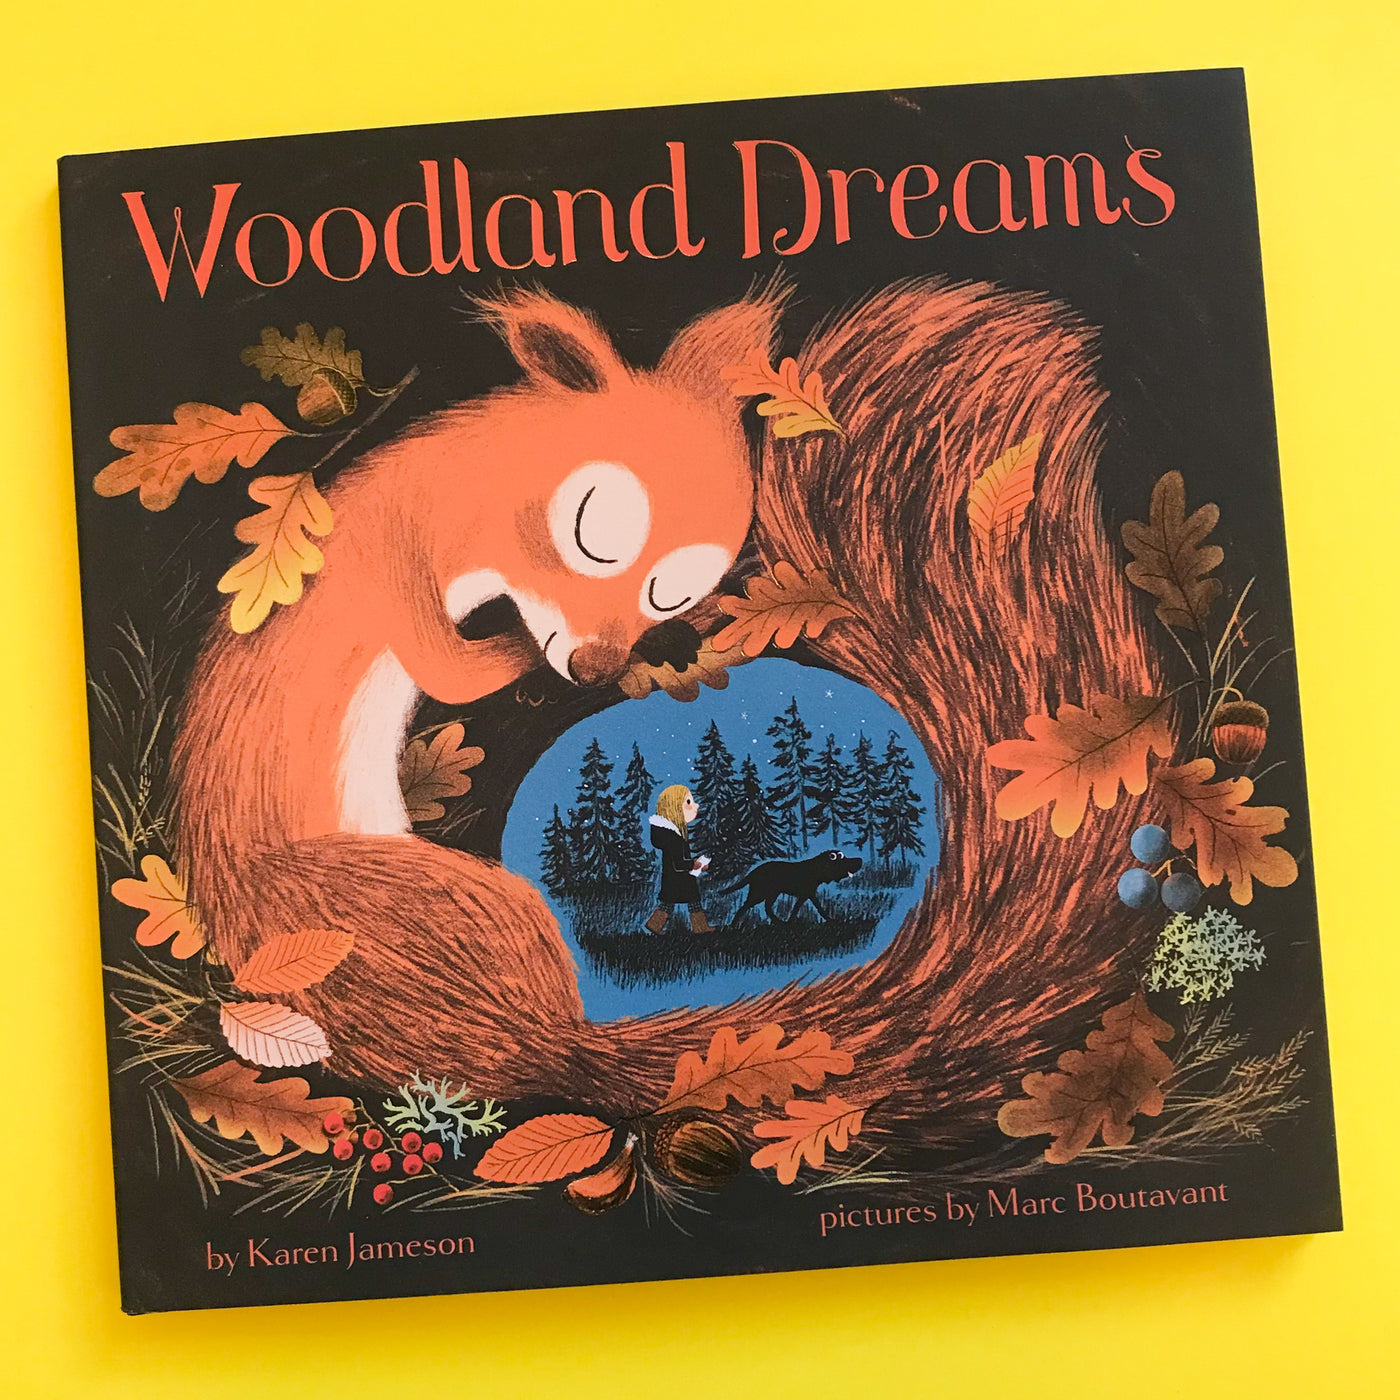 Woodland Dreams by Karen Jameson and Marc Boutavant